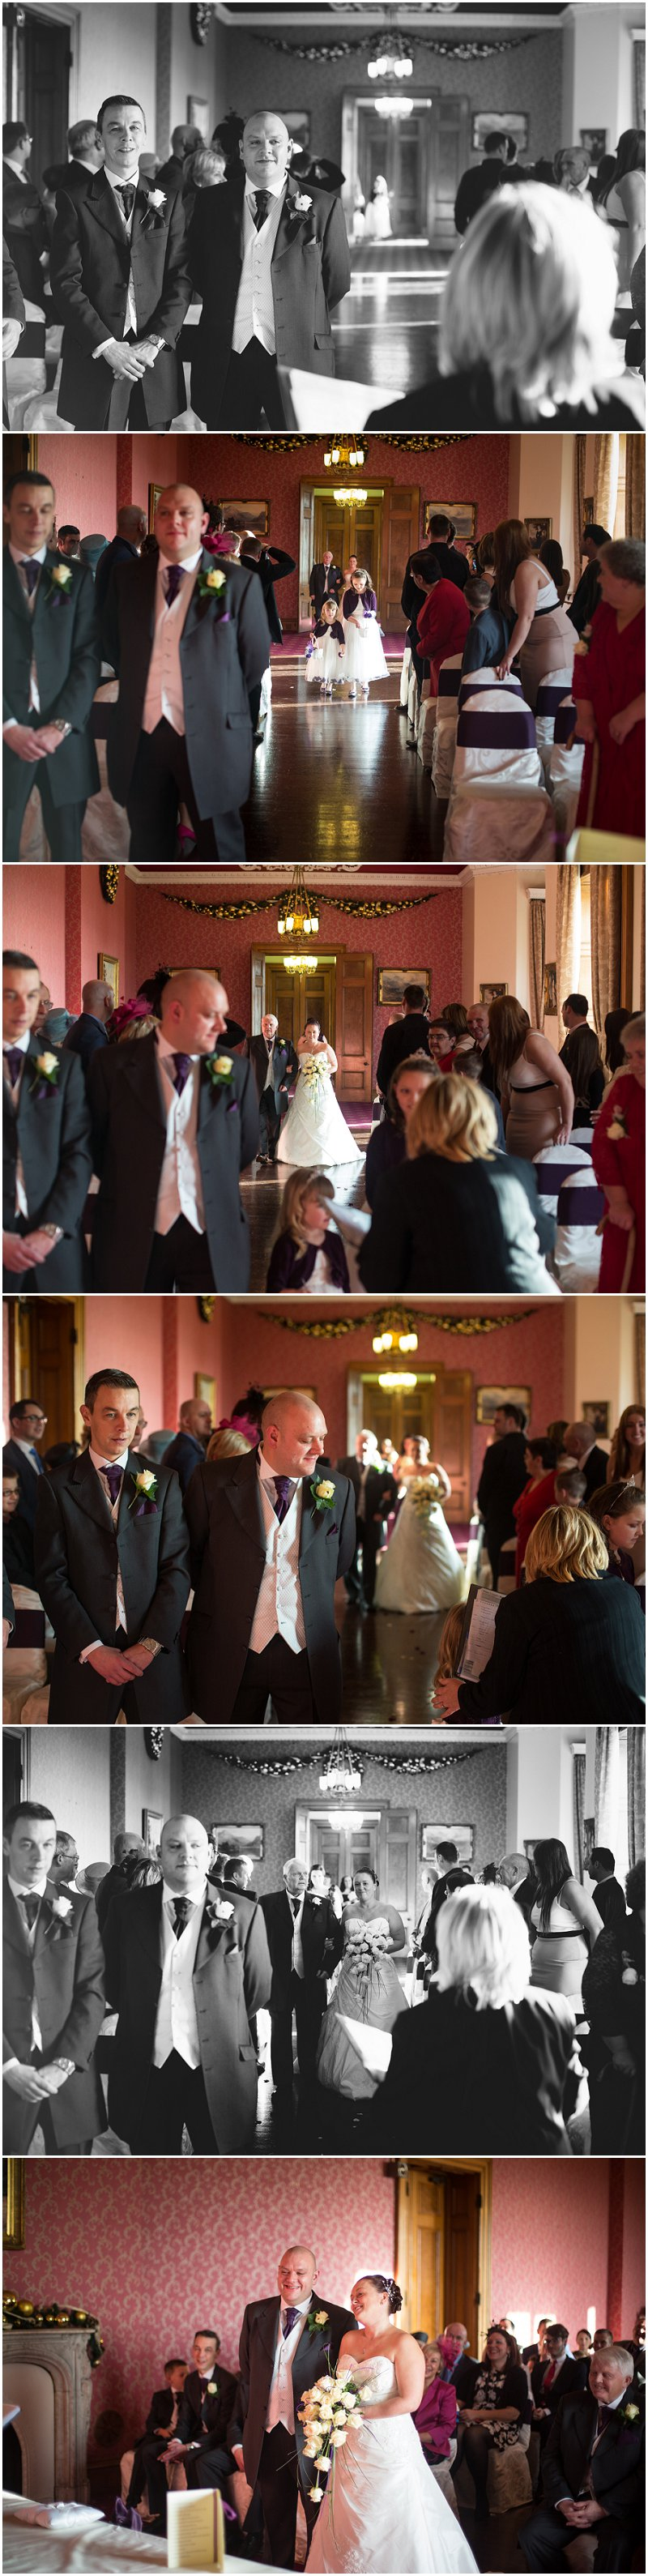 Wedding Ceremony at Haigh Hall, Wigan